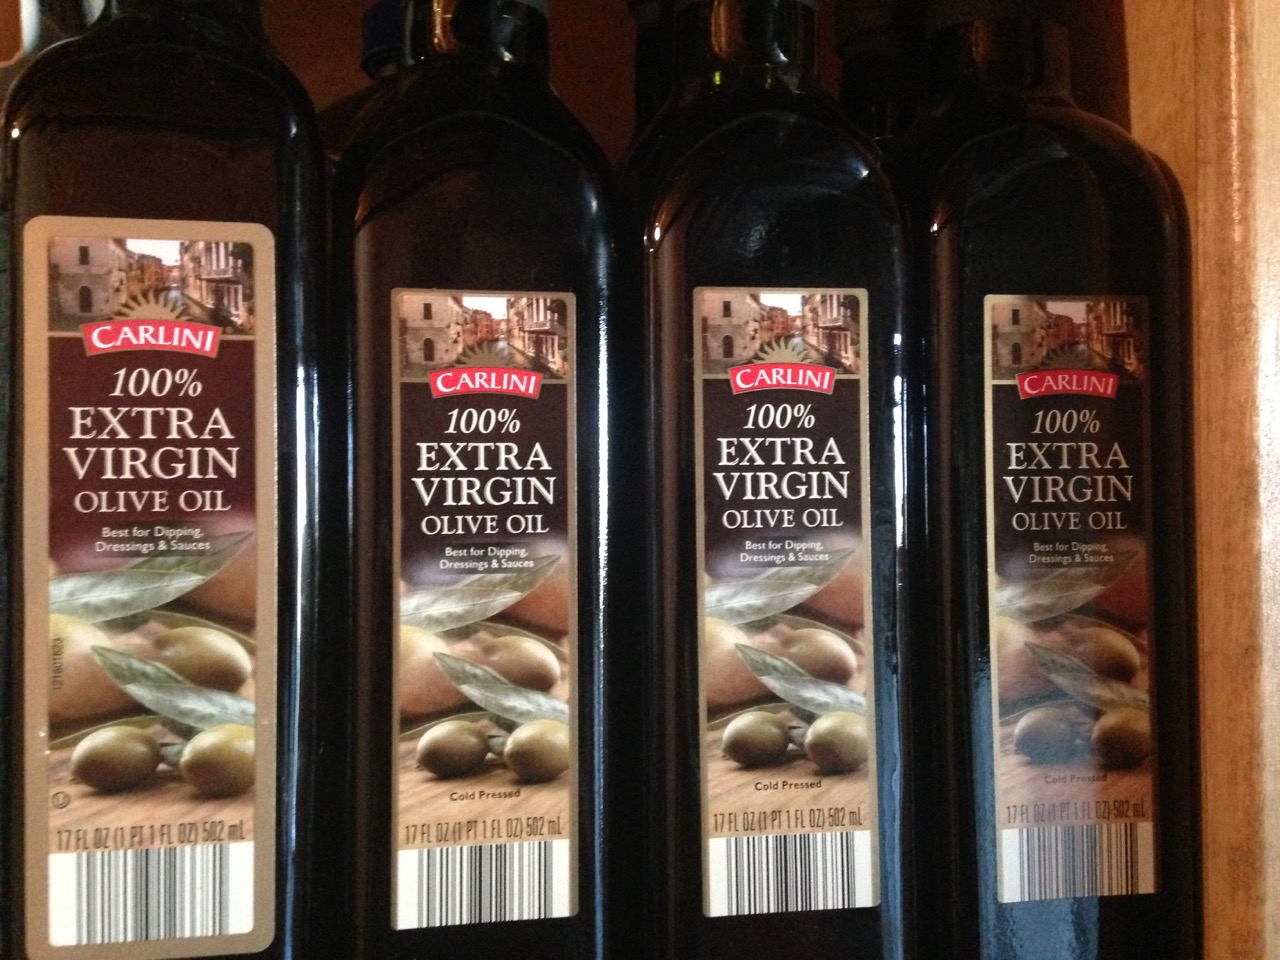 Table Talk – What can I do with 16 bottles of old Extra Virgin Olive Oil?